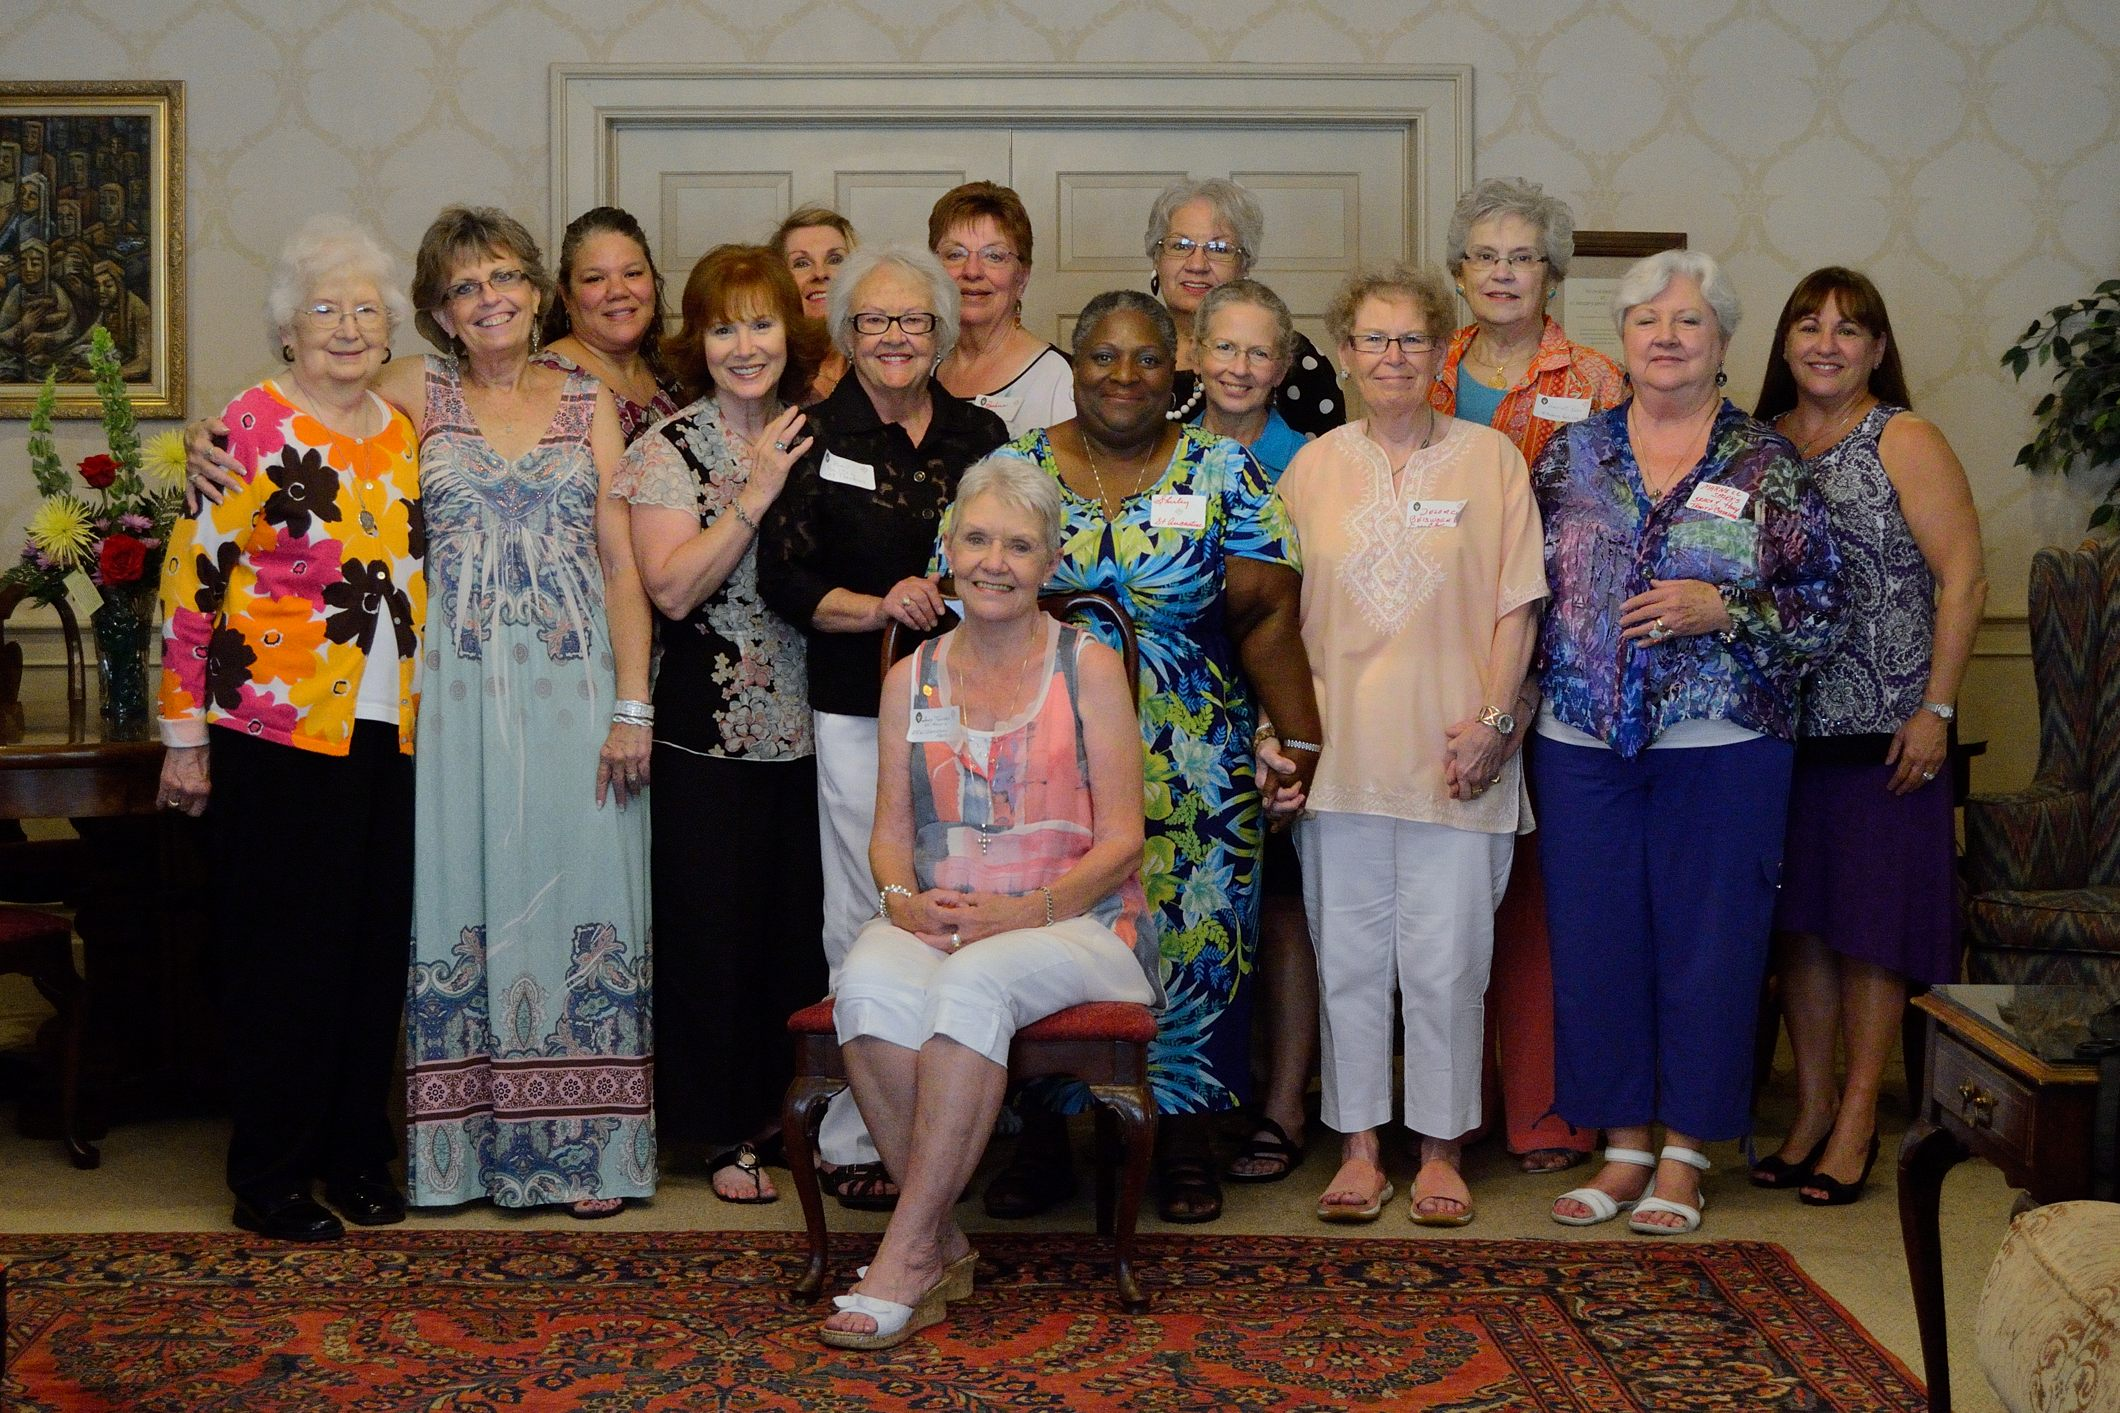 The Episcopal Church Women's Group